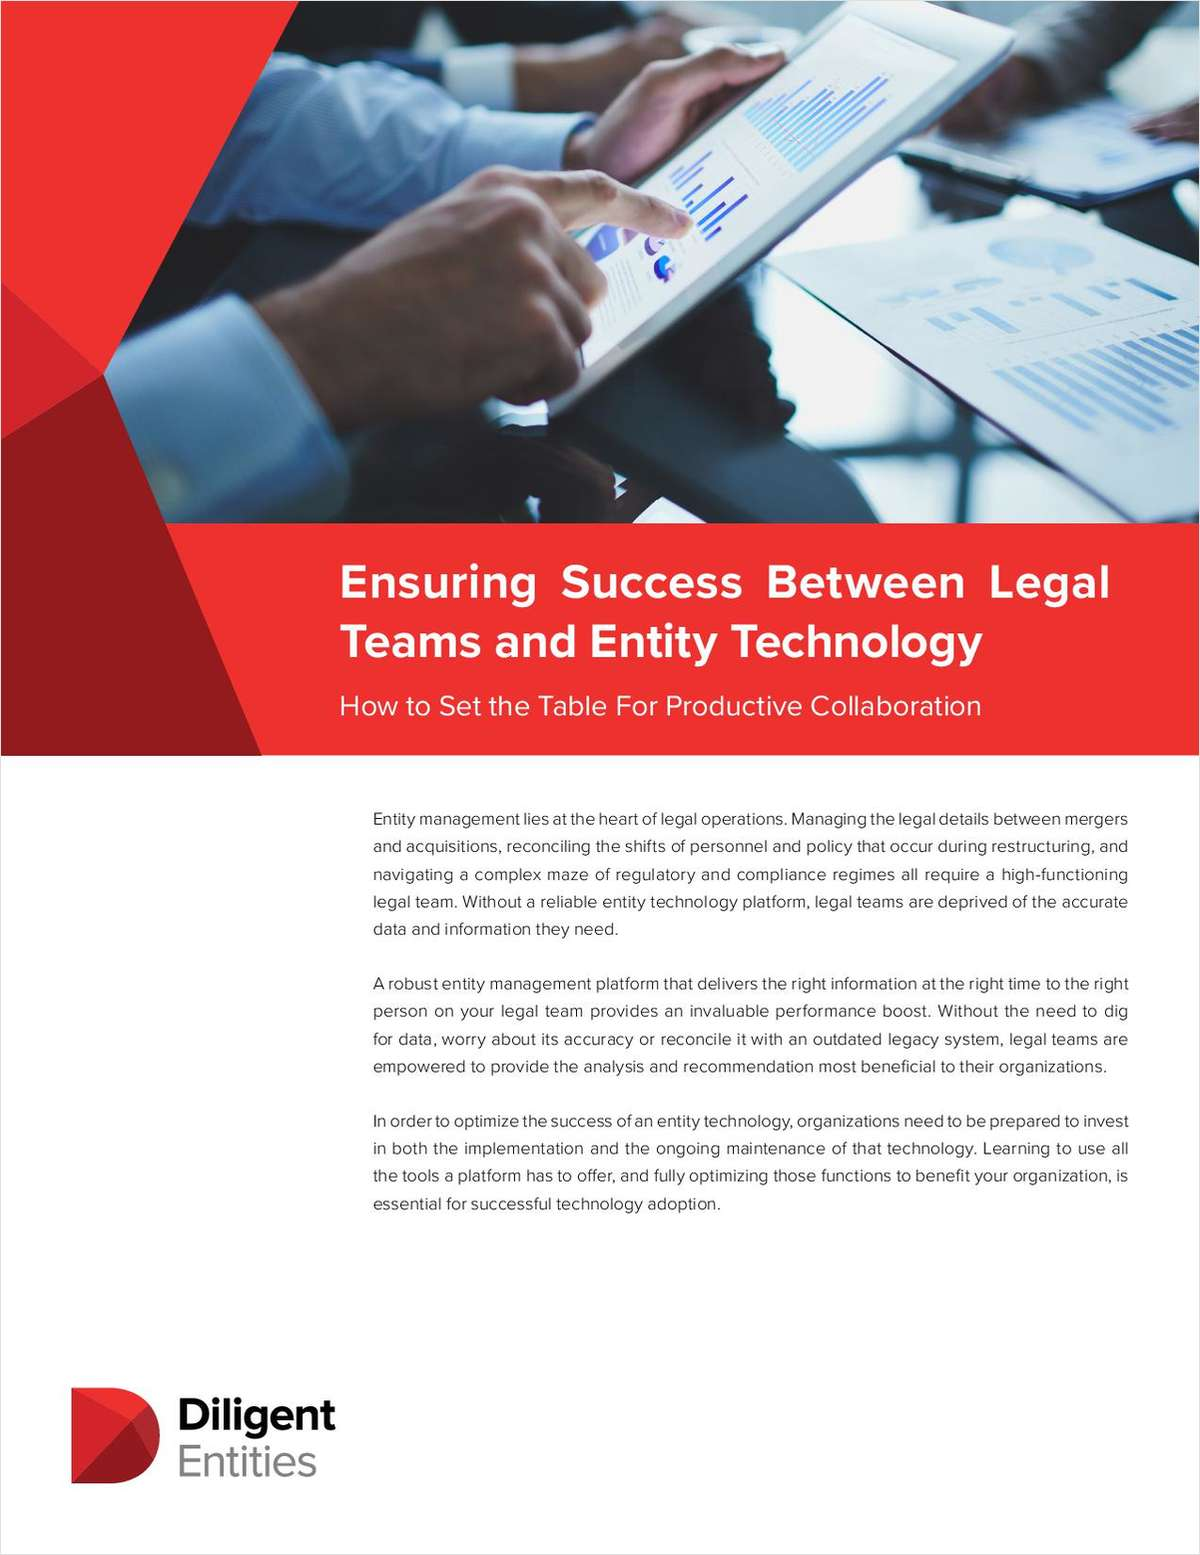 Ensuring Success Between Legal Teams and Entity Technology